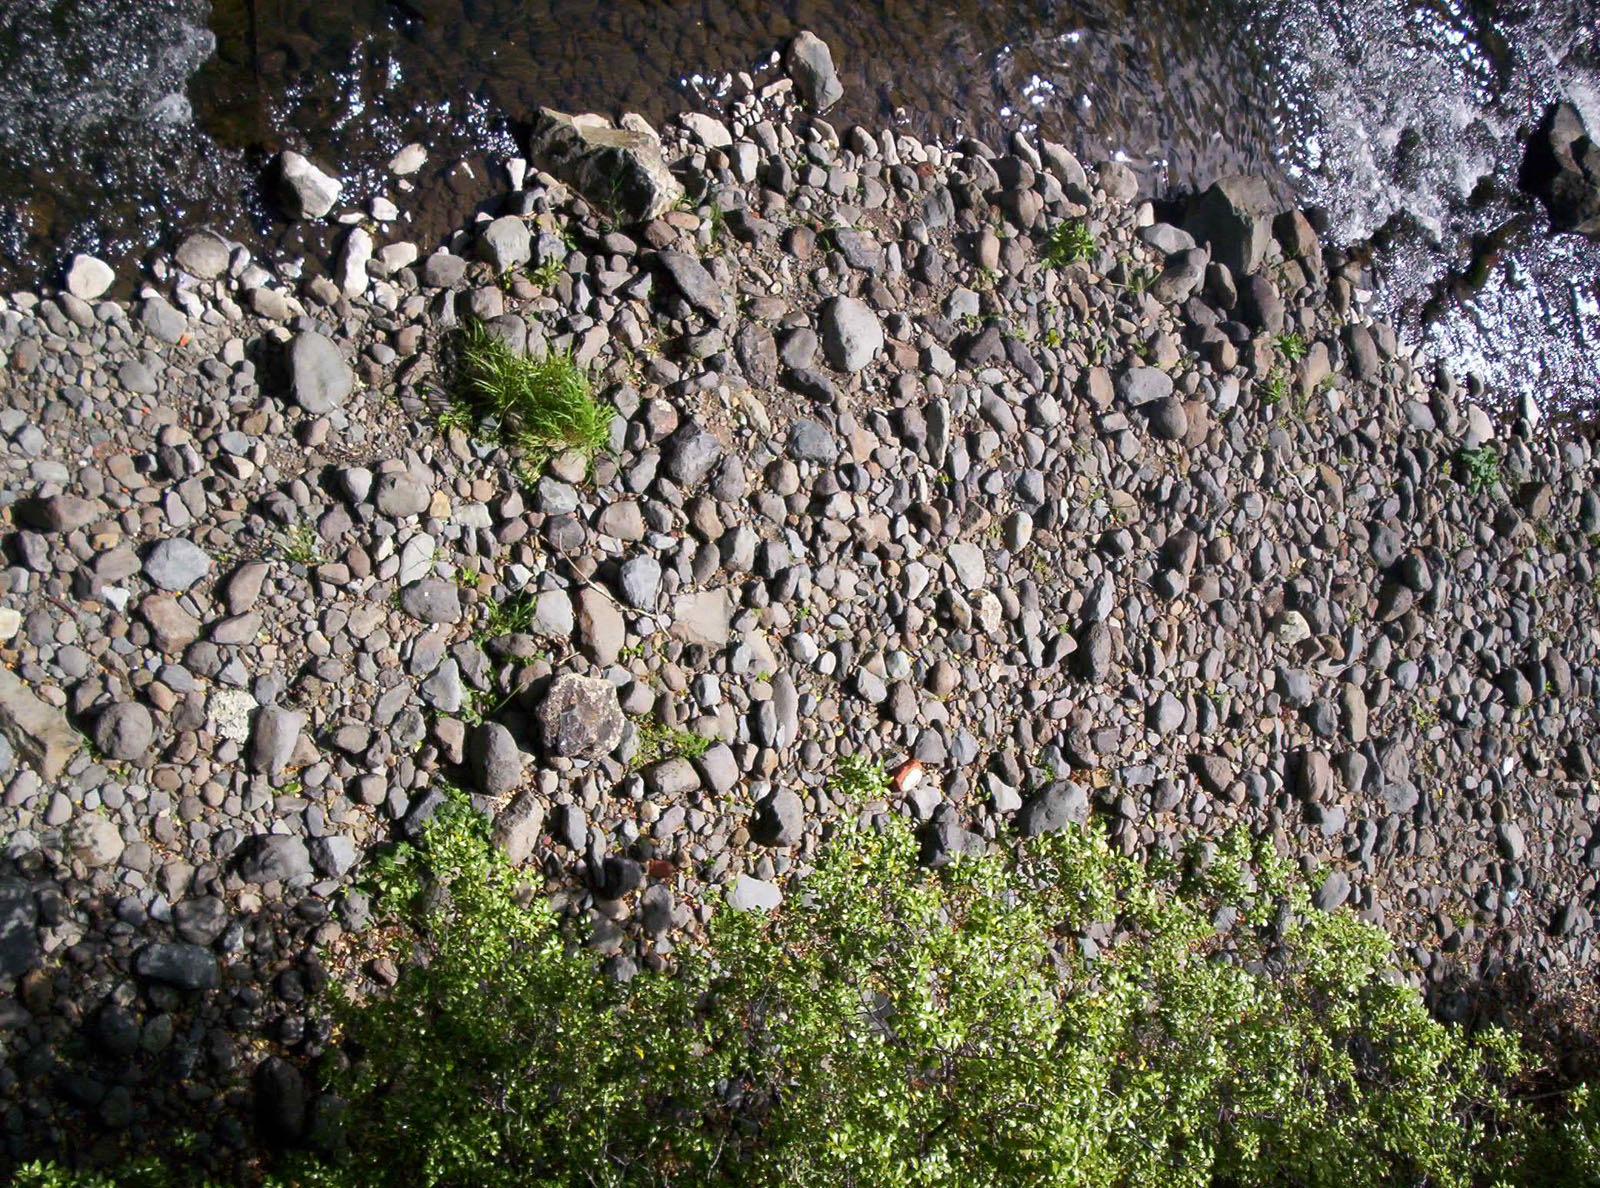 River Bed Textures, Bspo06, Grass, Green, Moving, HQ Photo